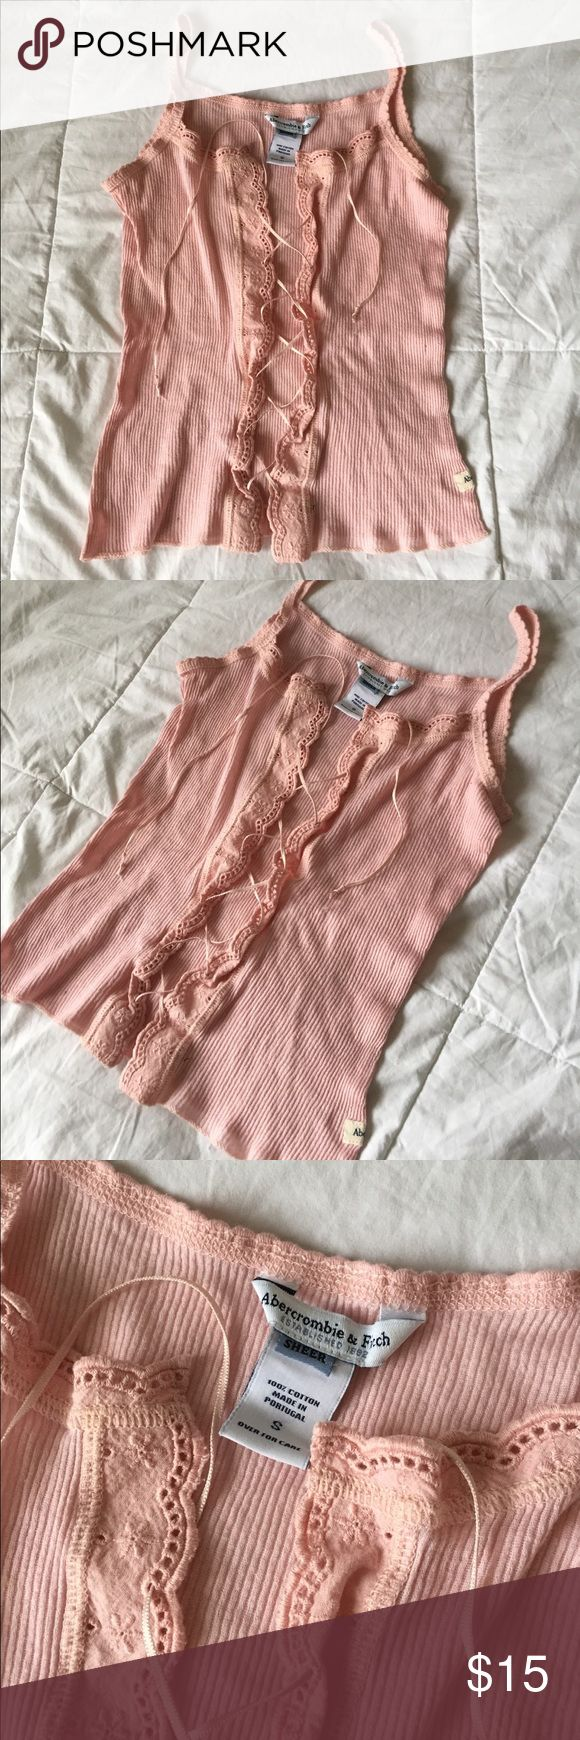 Vintage Abercrombie and fitch top Light pink lace up crop top!! Lace detail and ribbed, definitely an XS not small. Tiny hole on side as pictured. Shirt is unique and probably 10- 12 years old! Abercrombie & Fitch Tops